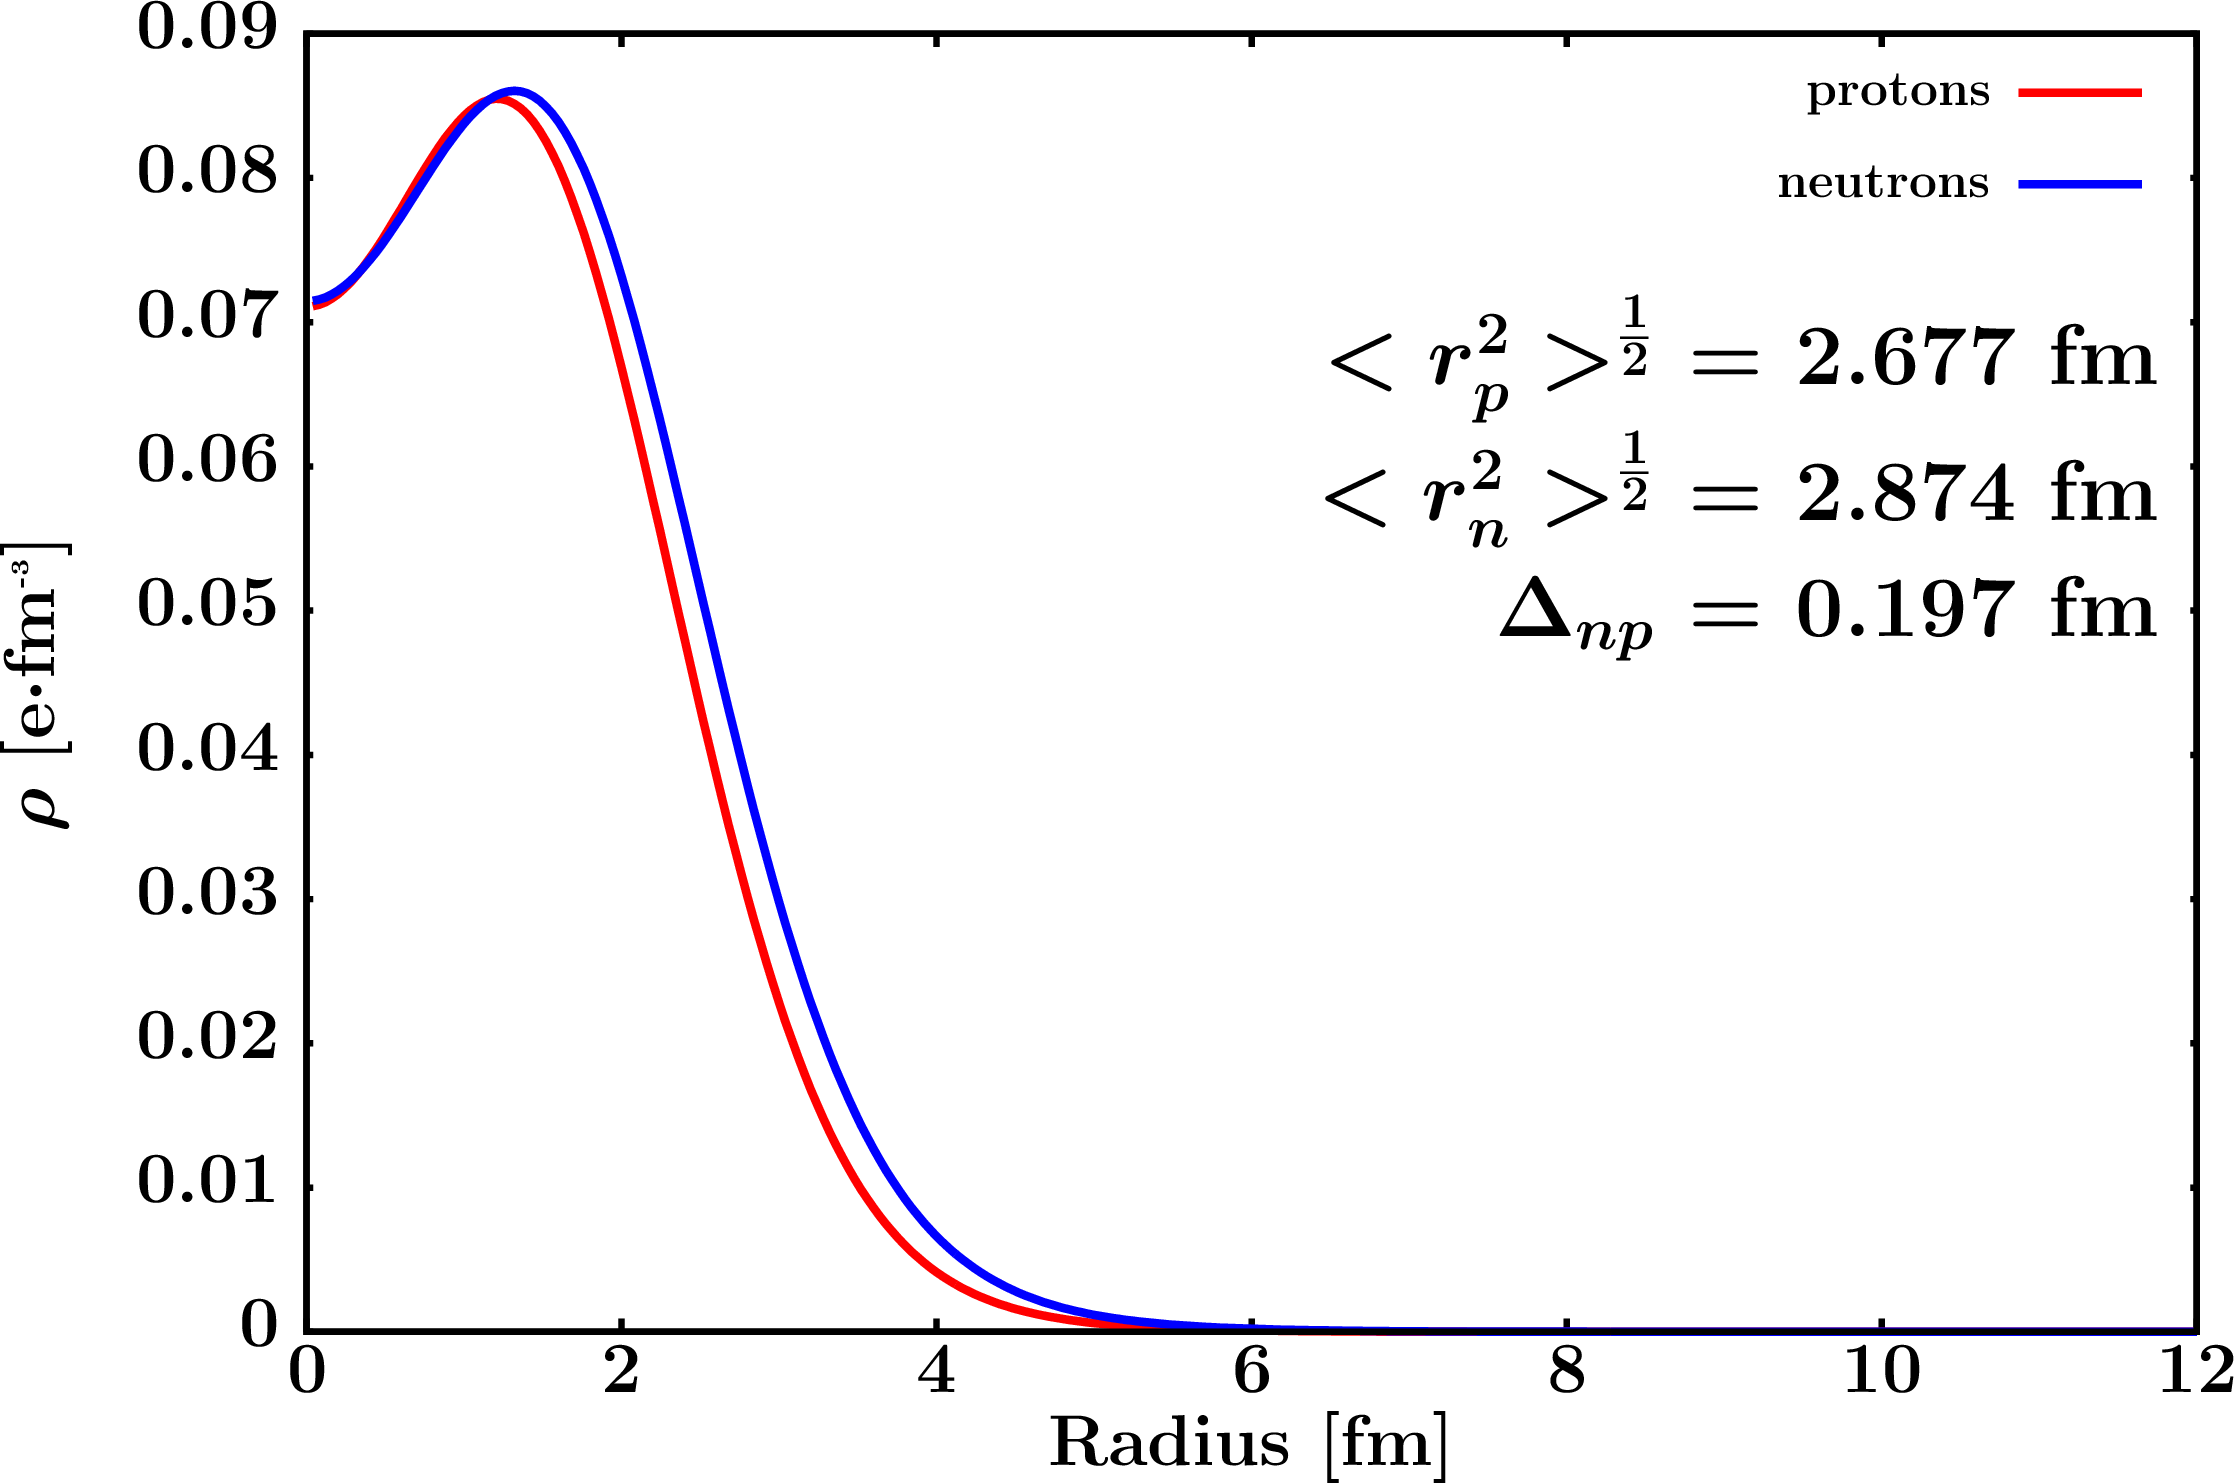 Neutron and proton densities over radius, from the dissertation of Cole Pruitt.